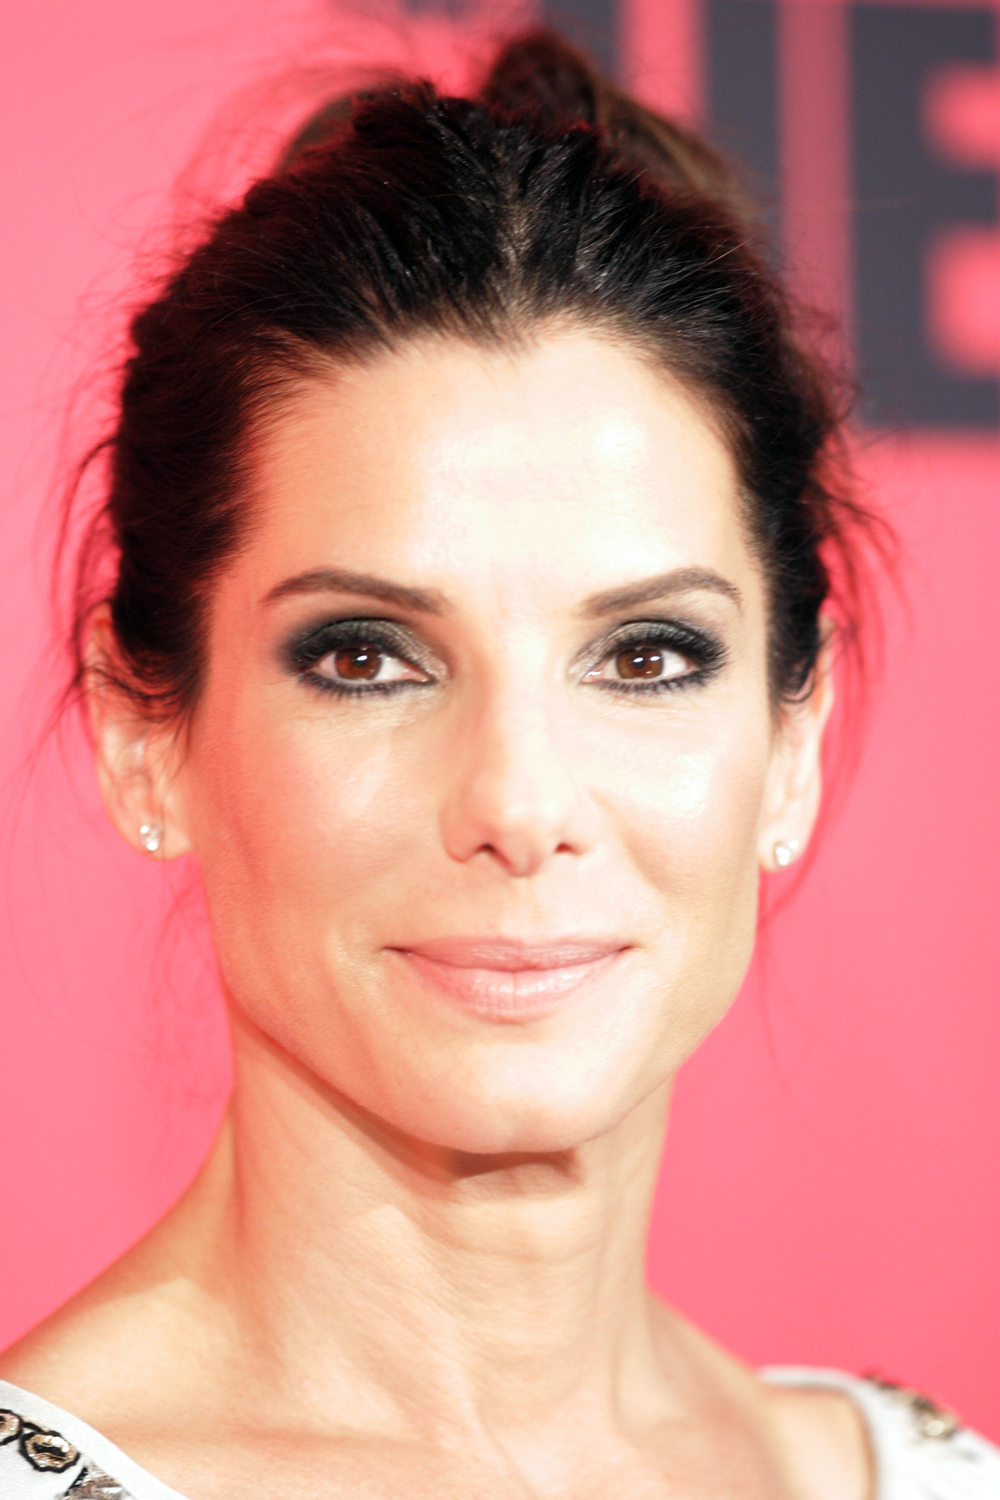 SANDRA BULLOCK Marie Claire Magazine 5/02 12 BEST THINGS IN MY LIFE